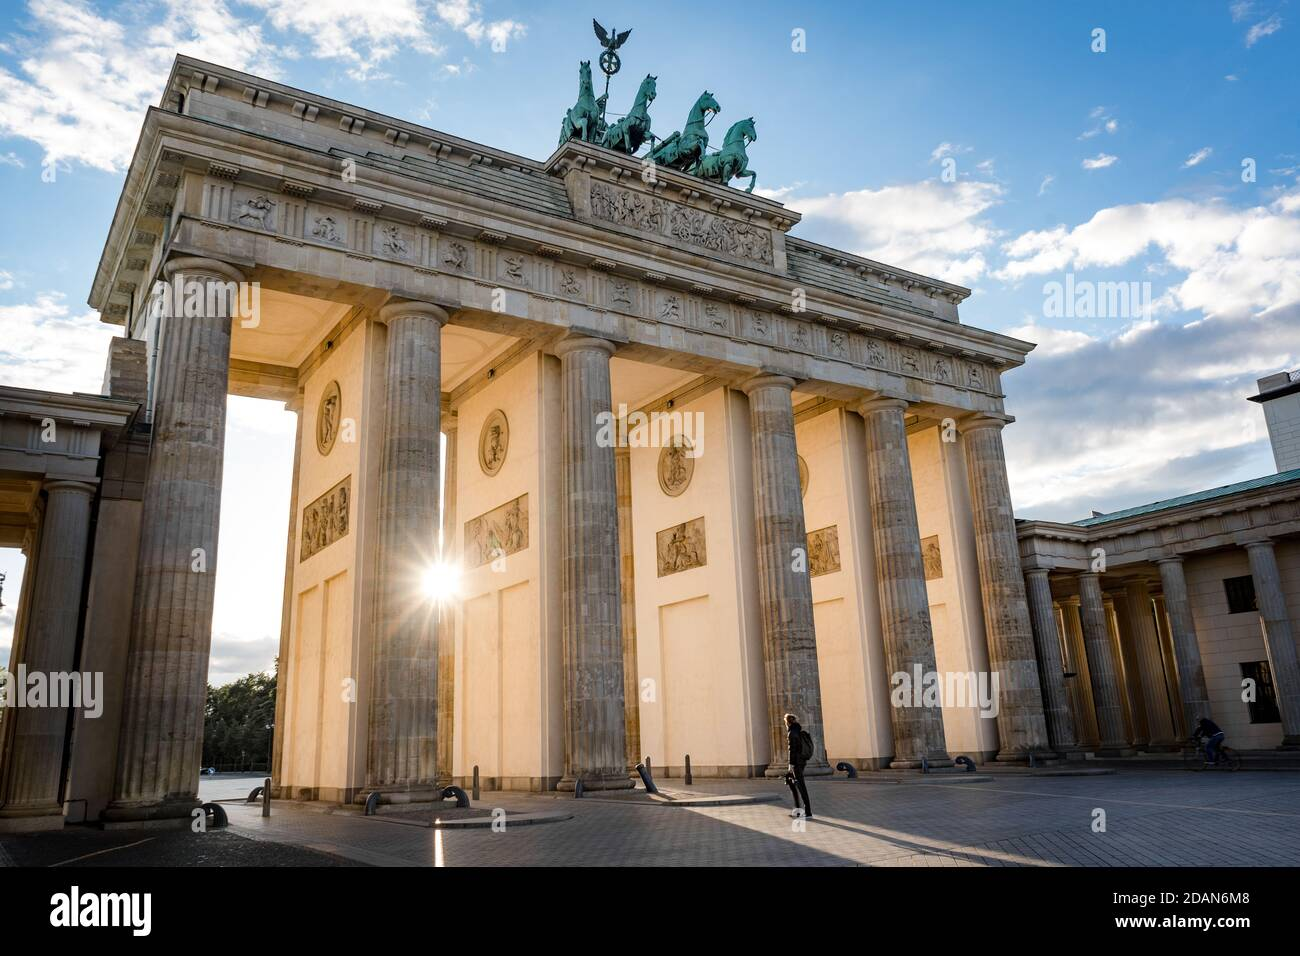 man standing in front of brandburg gate berlin germany during sunset Stock Photo